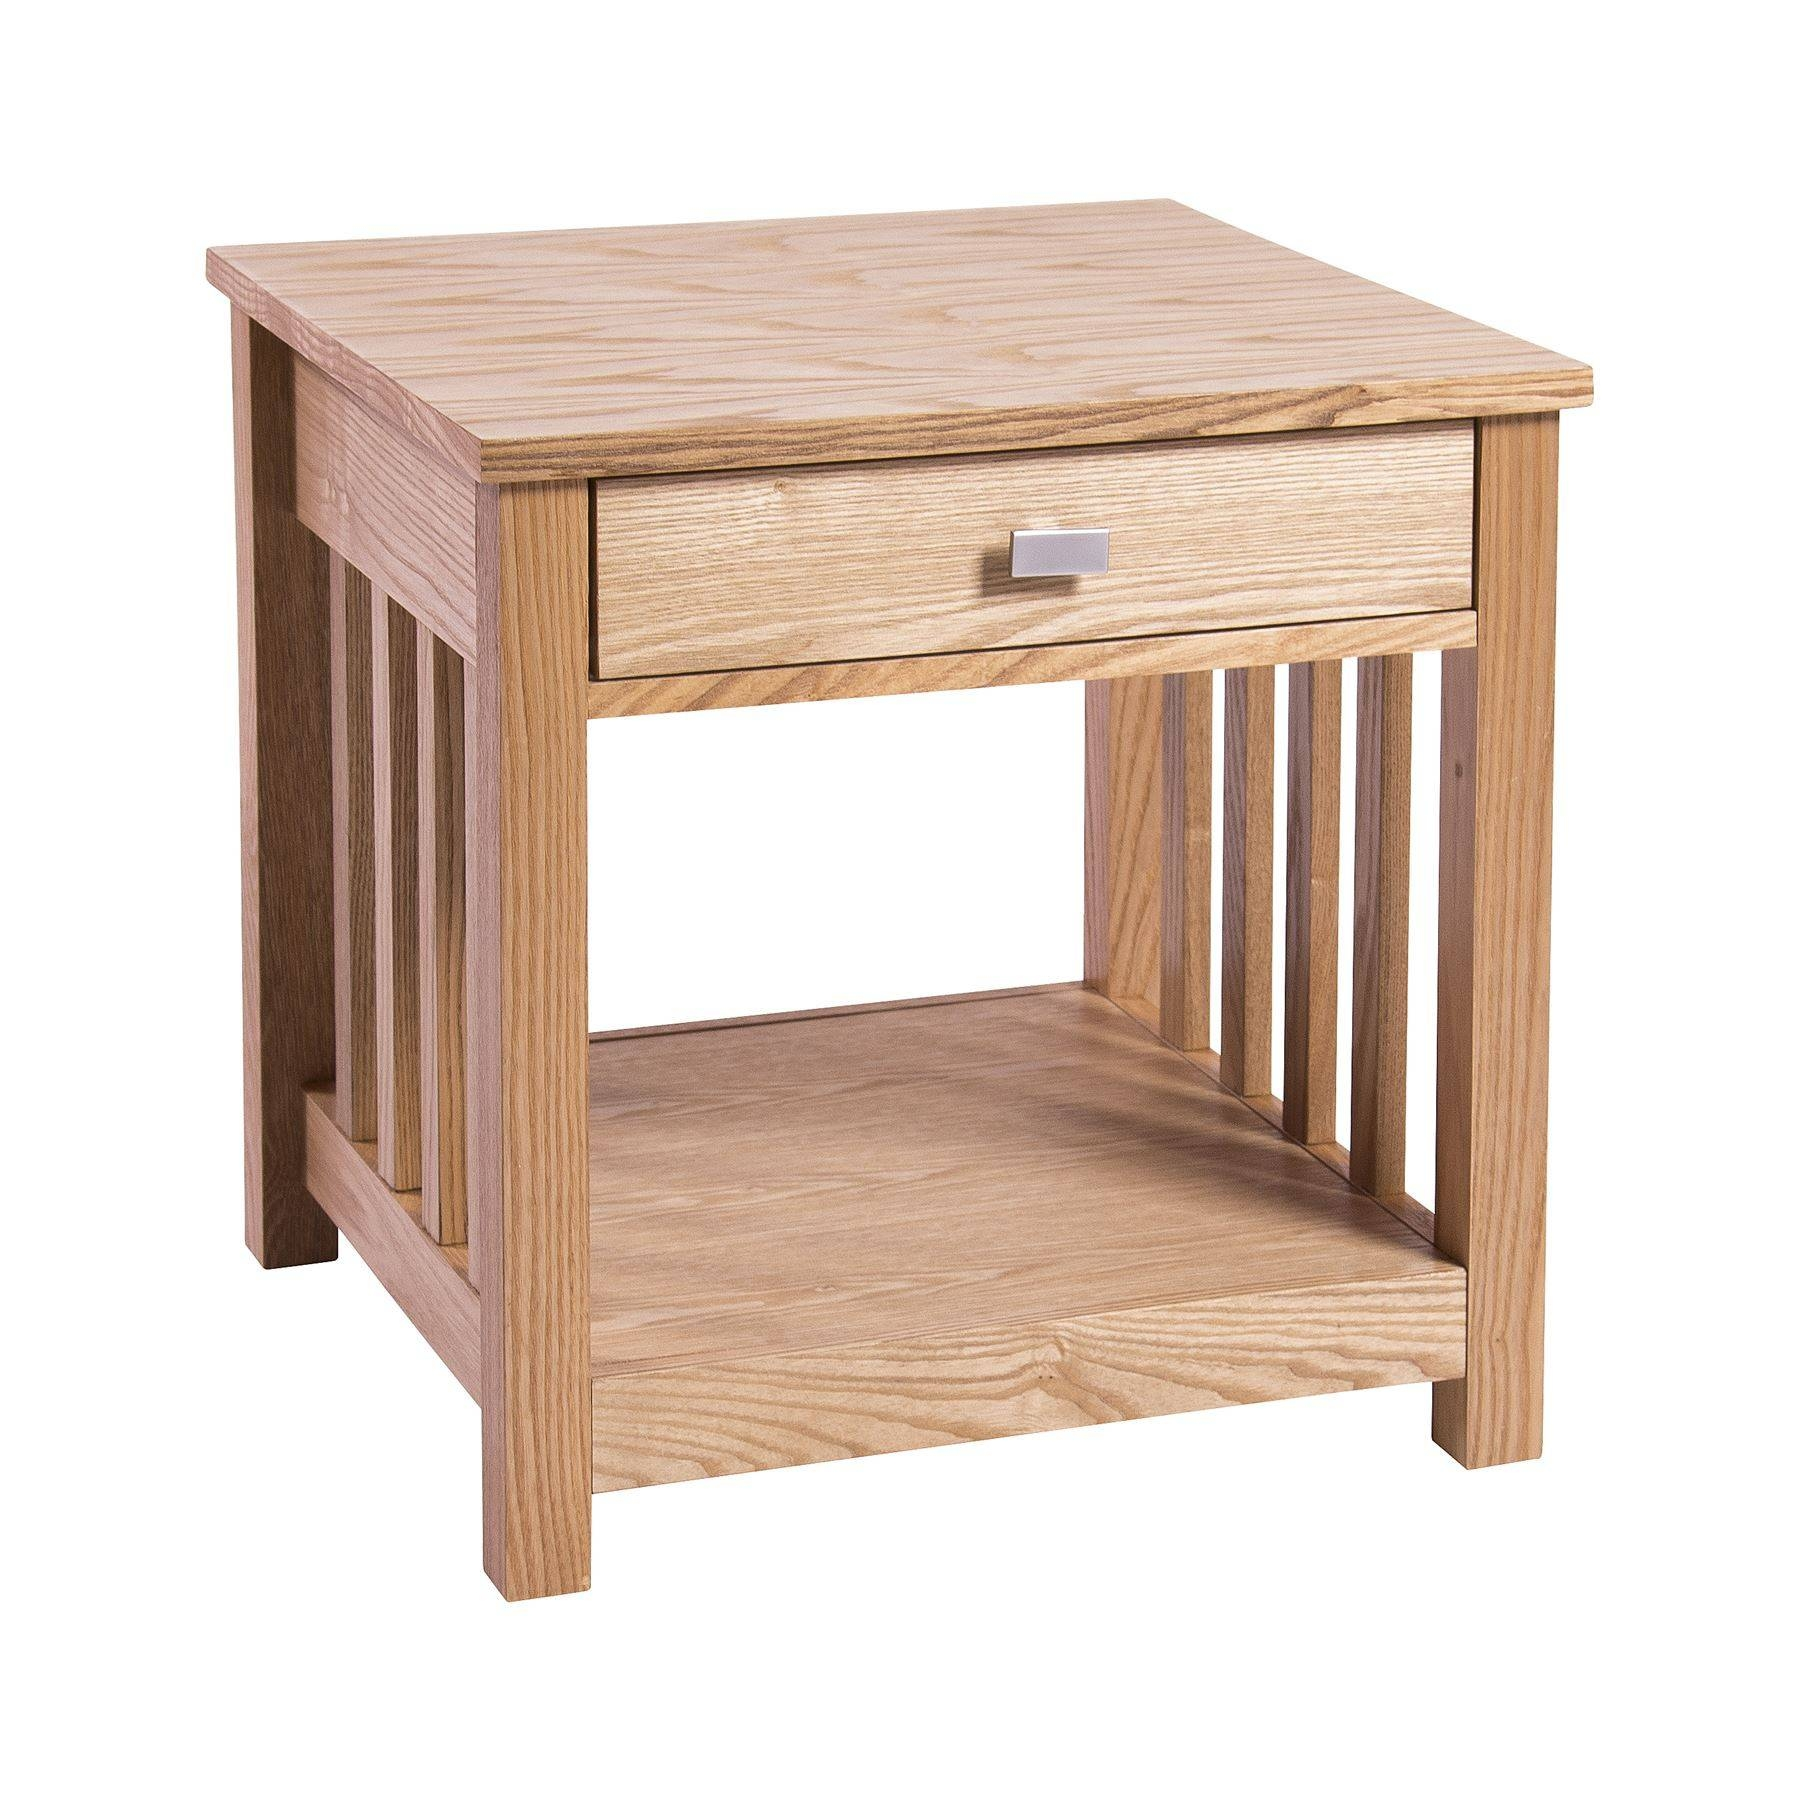 Royal Oak Living Room Bookcase Tv Unit Stand Coffee Lamp Nest Throughout Oak Sideboard Uk (View 12 of 20)